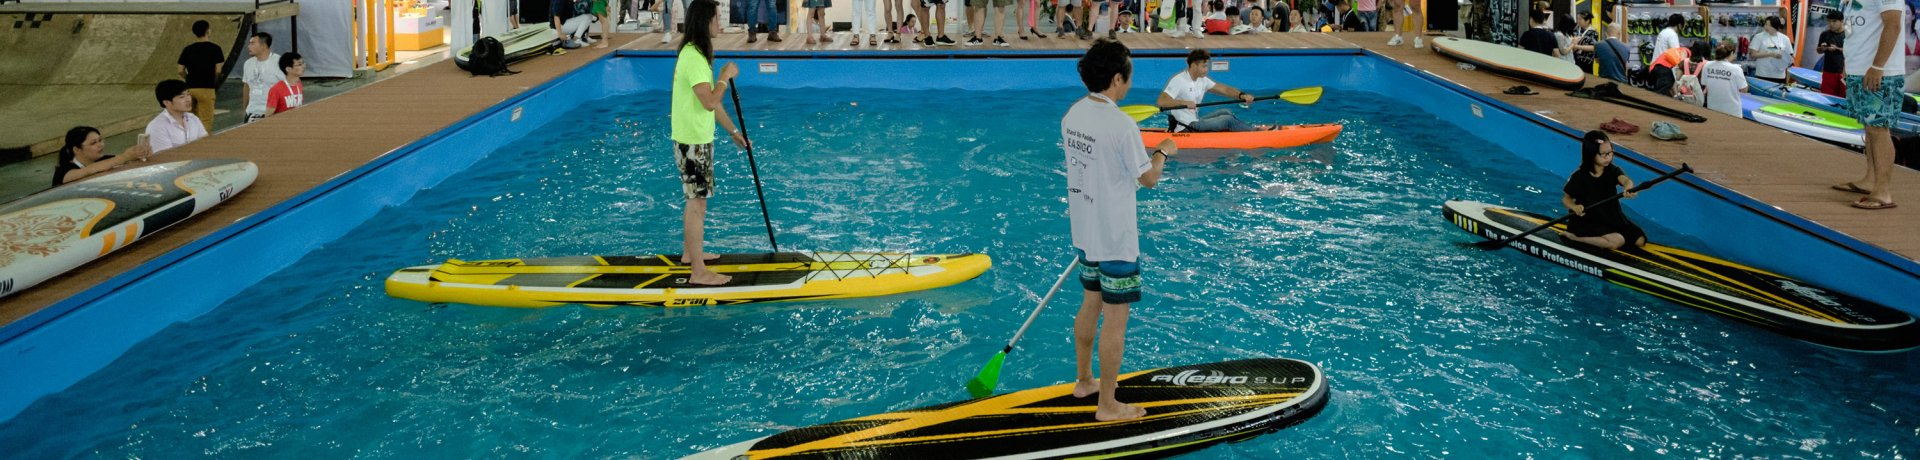 Paddling in ISPO Shanghai Water Sports area